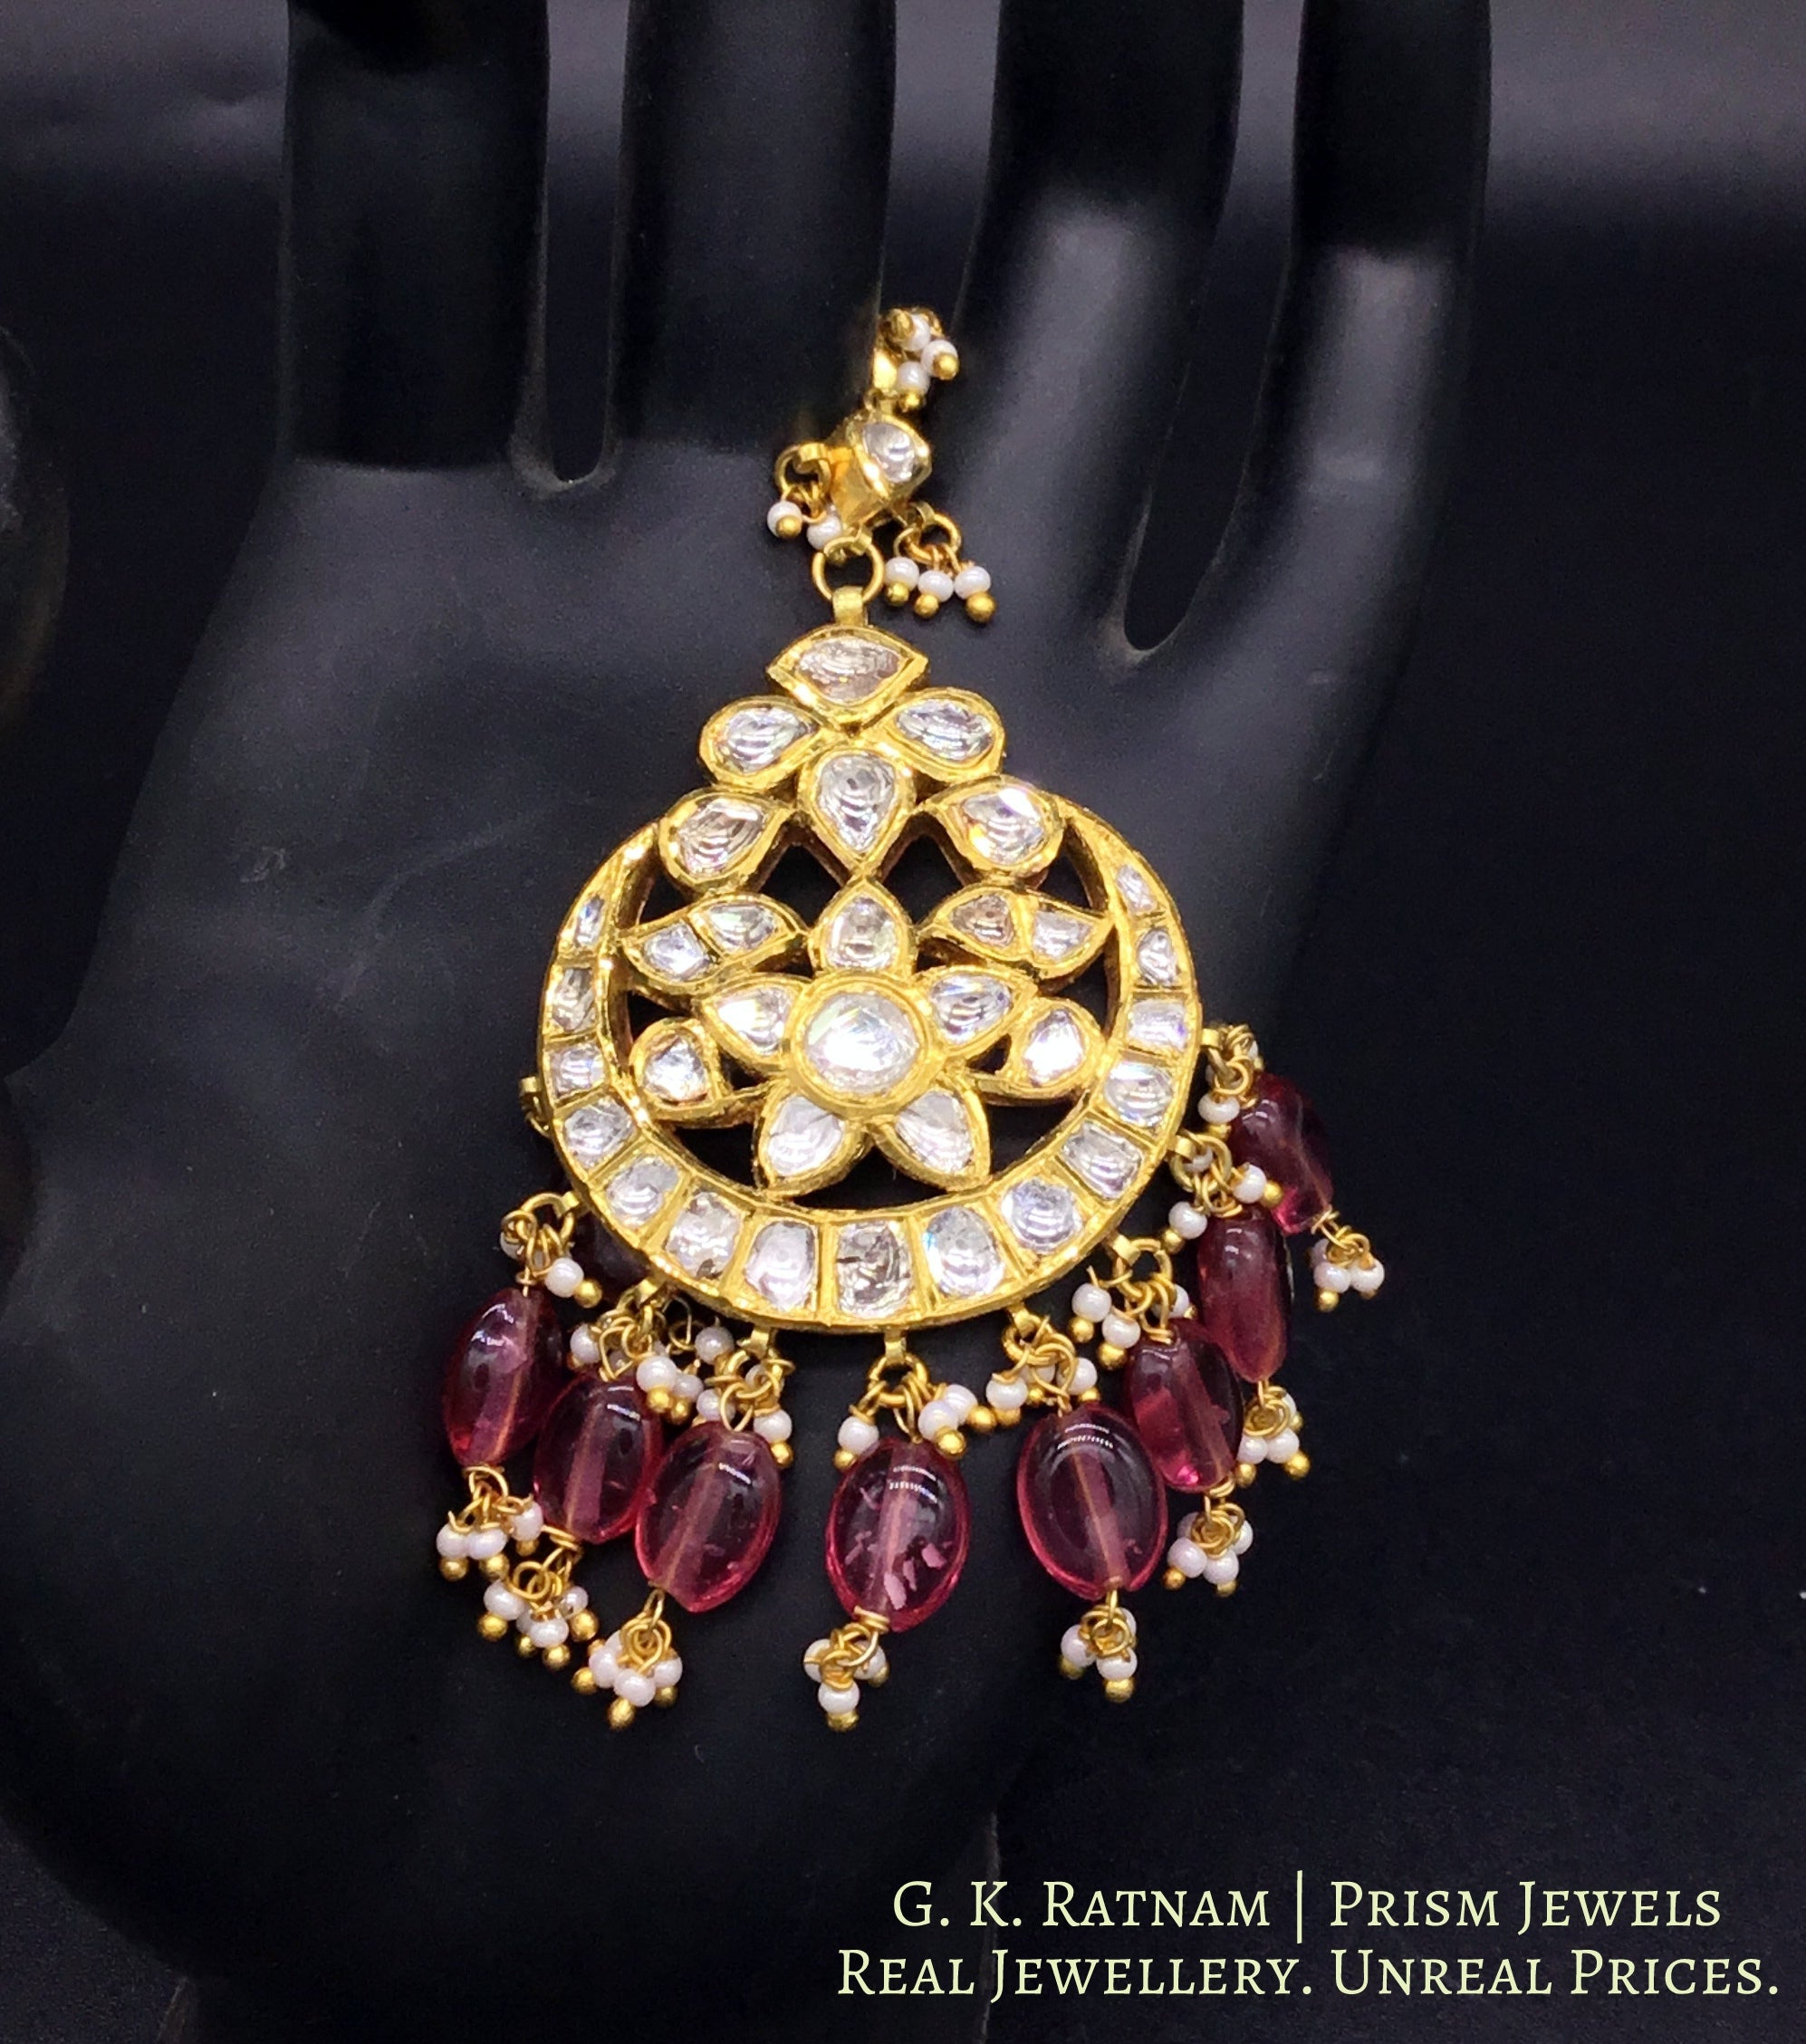 18k Gold and Diamond Polki Maang Tika with tourmaline-pink stones - gold diamond polki kundan meena jadau jewellery